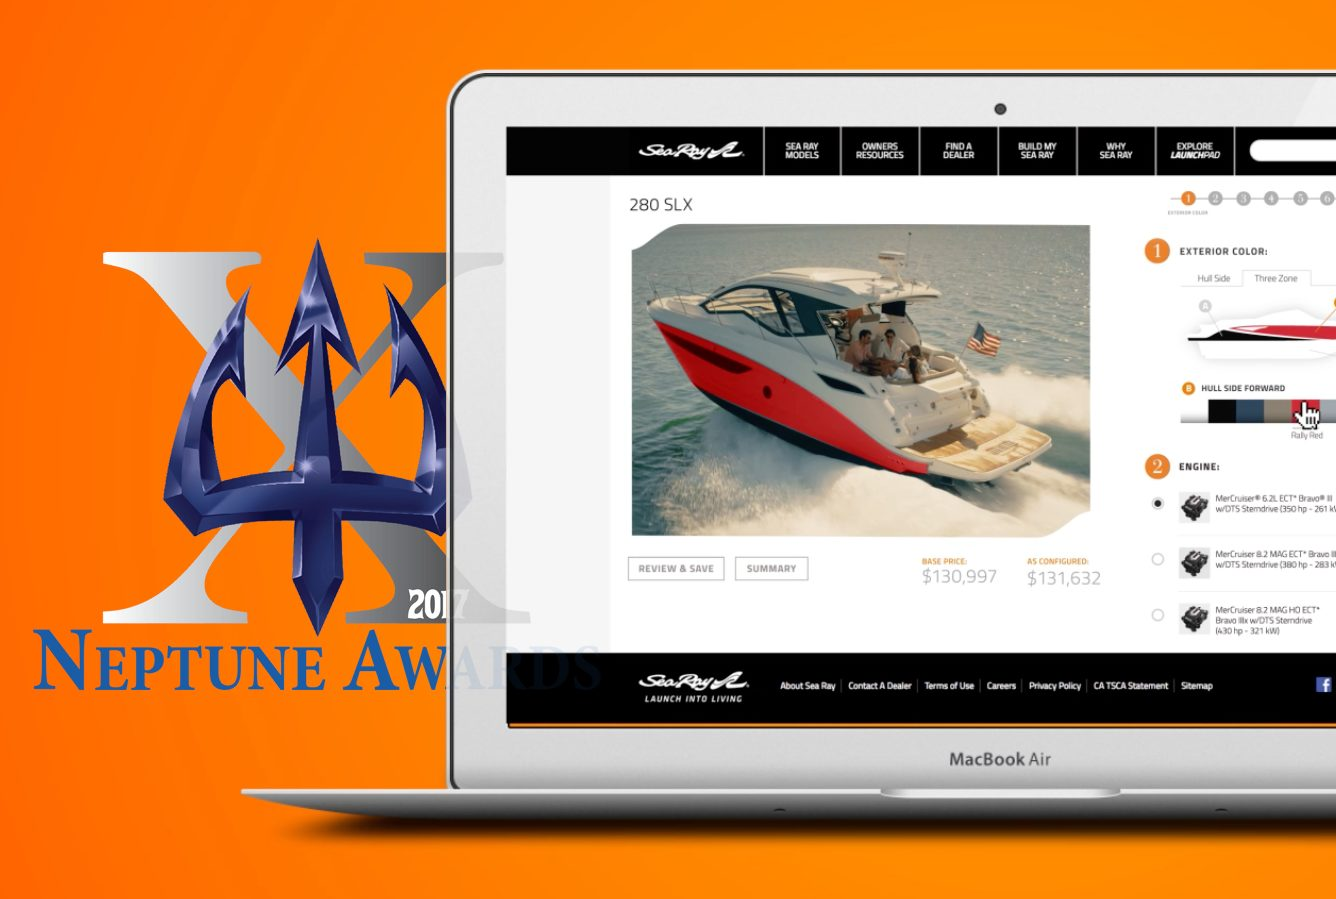 Sea Ray Boat Configurator Wins Neptune Award